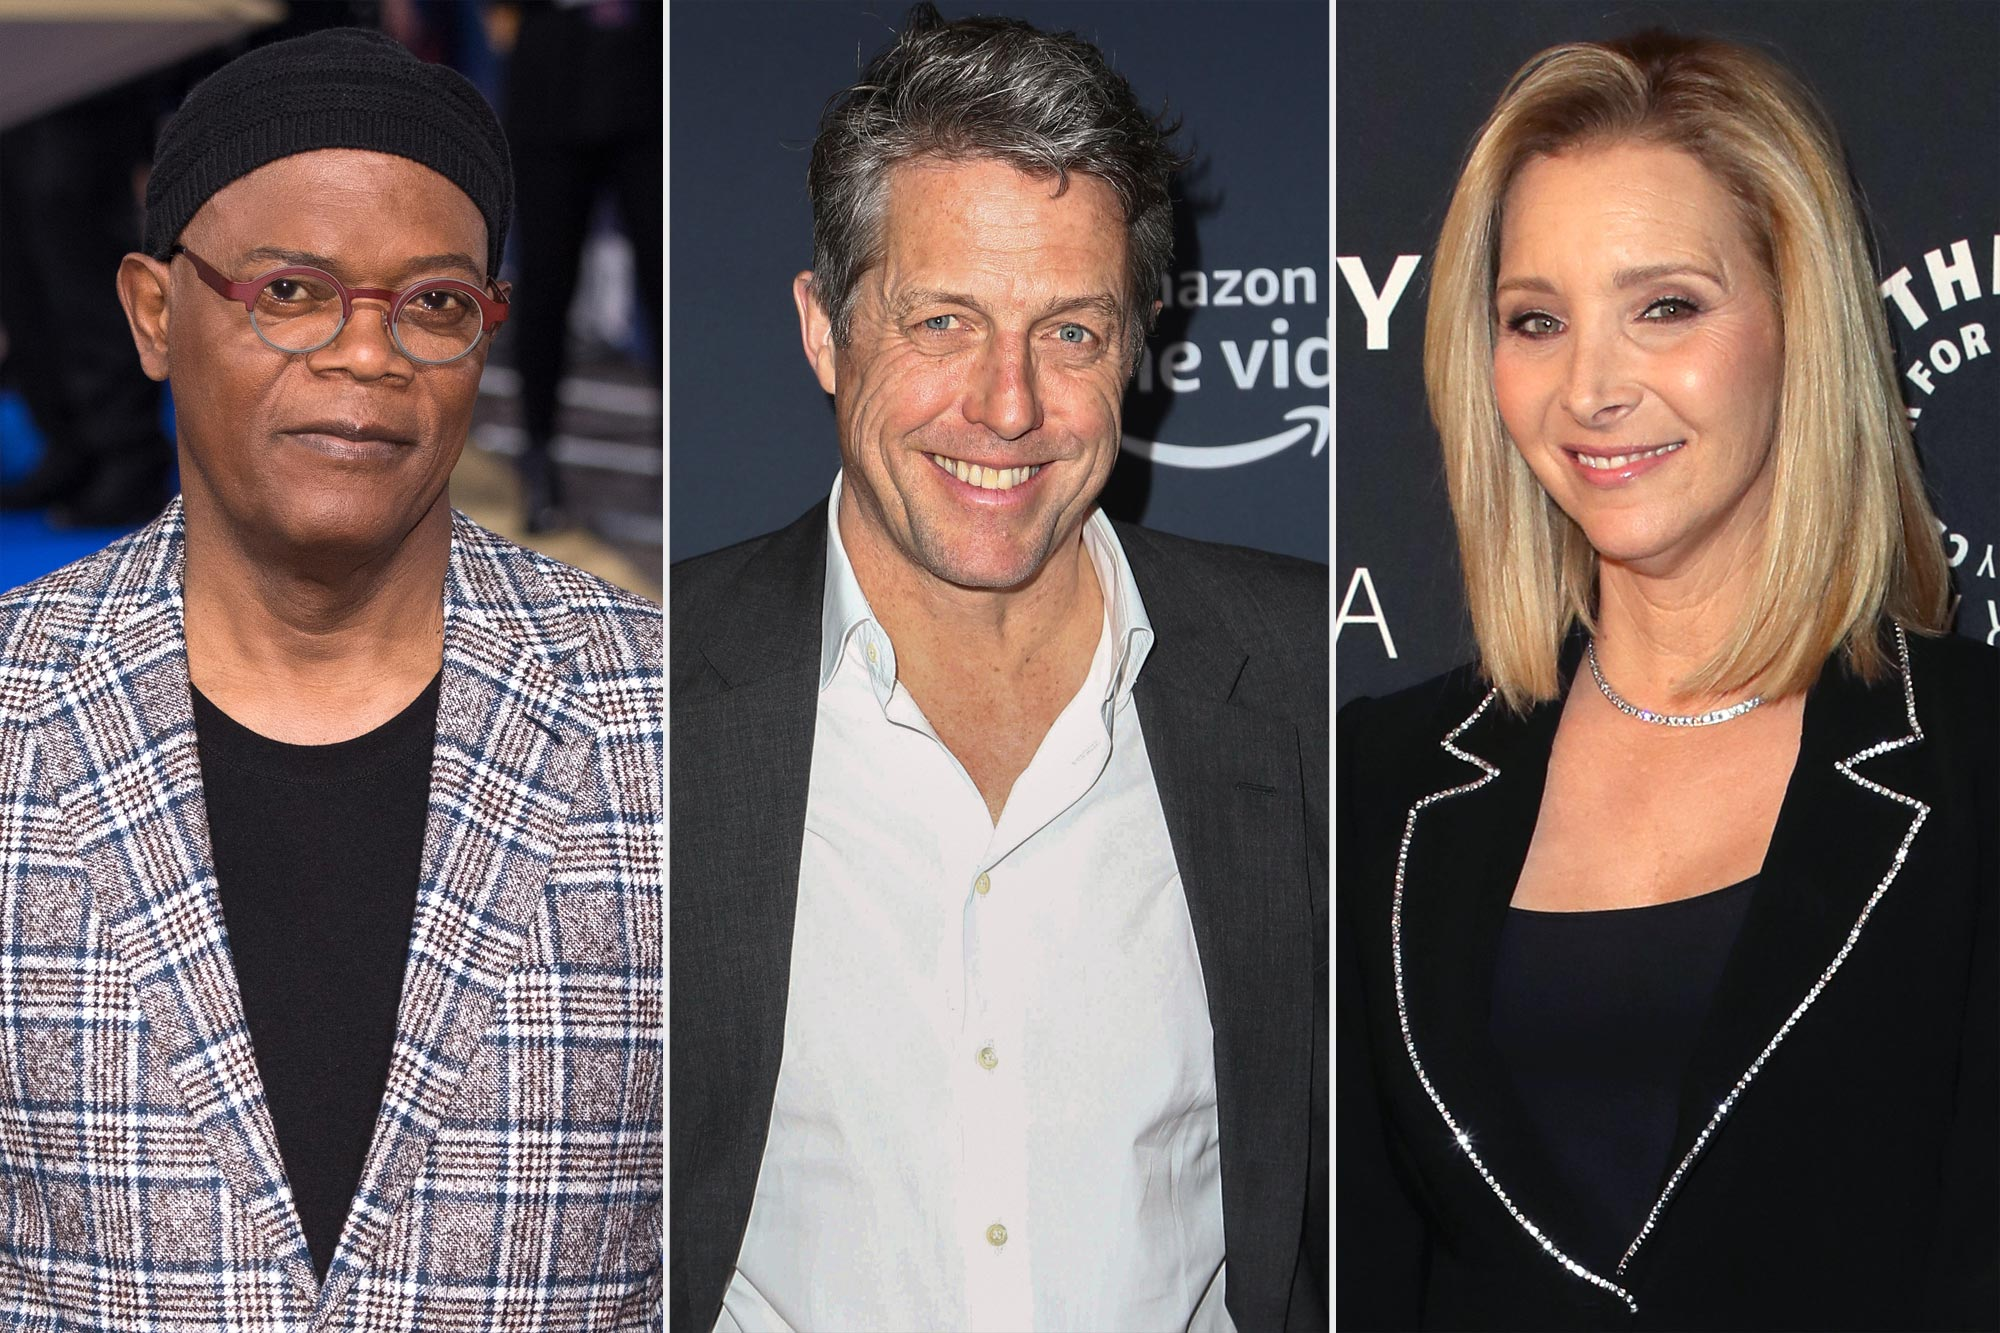 Samuel L. Jackson, Hugh Grant, and Lisa Kudrow